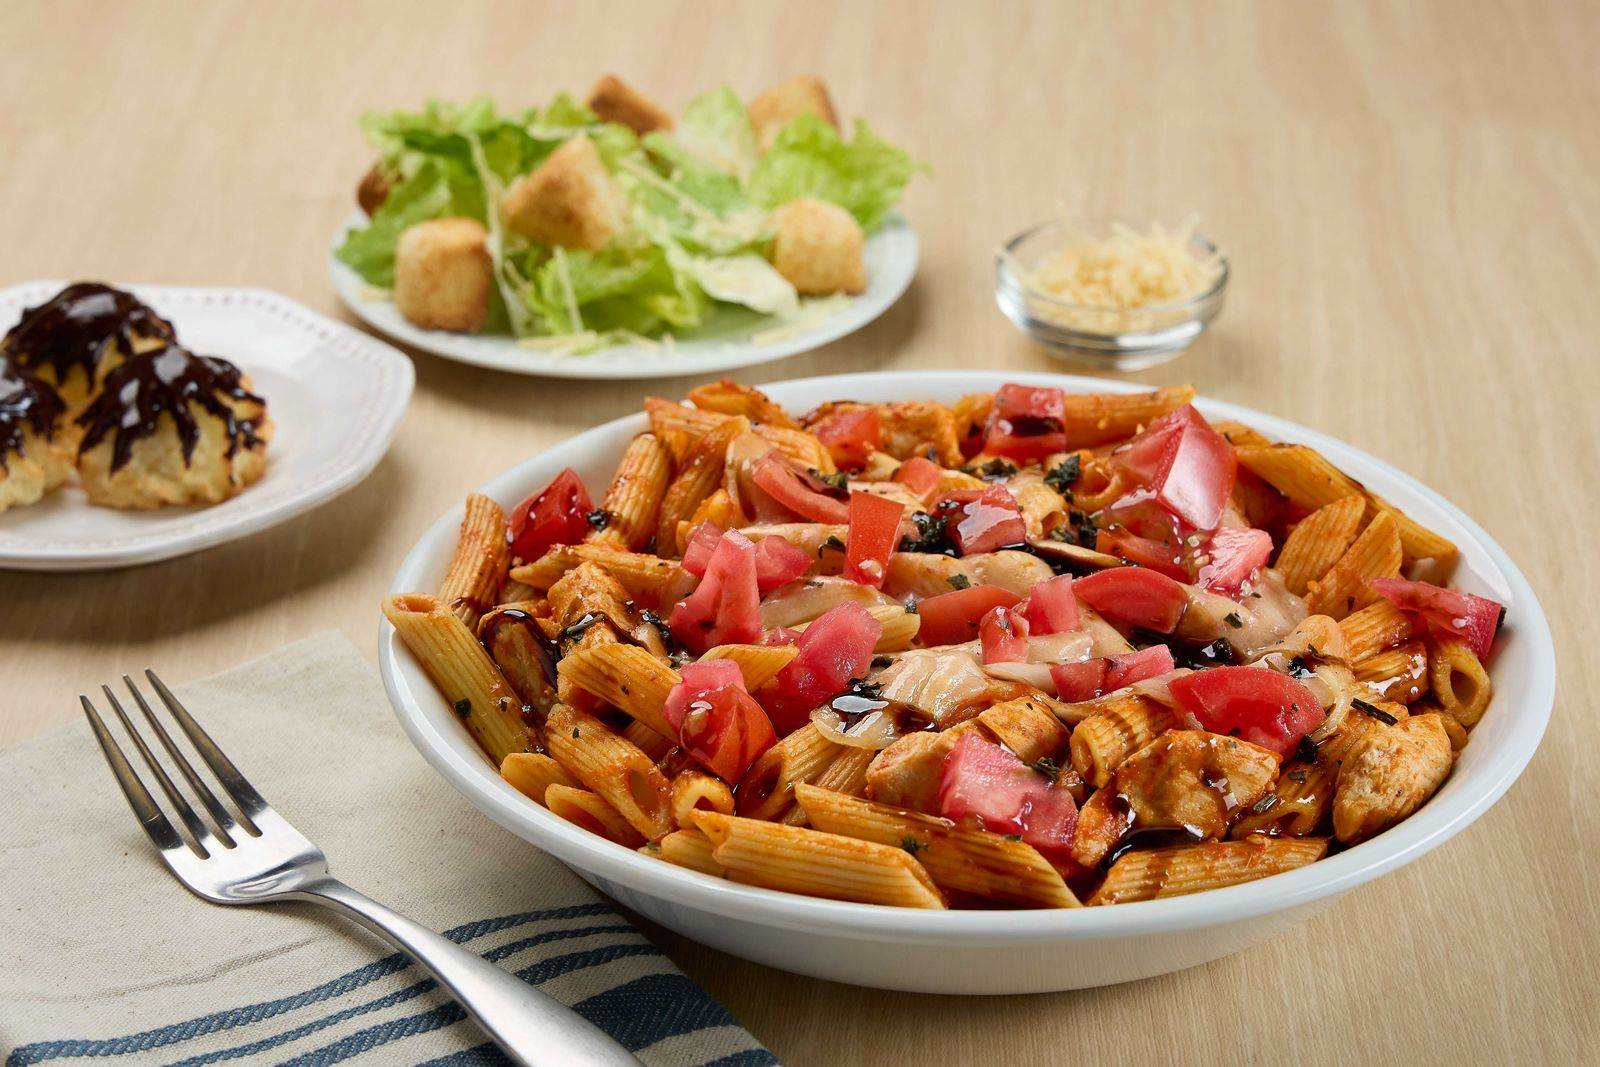 TooJay's Deli Launches New $14.99 Choose Three Meal